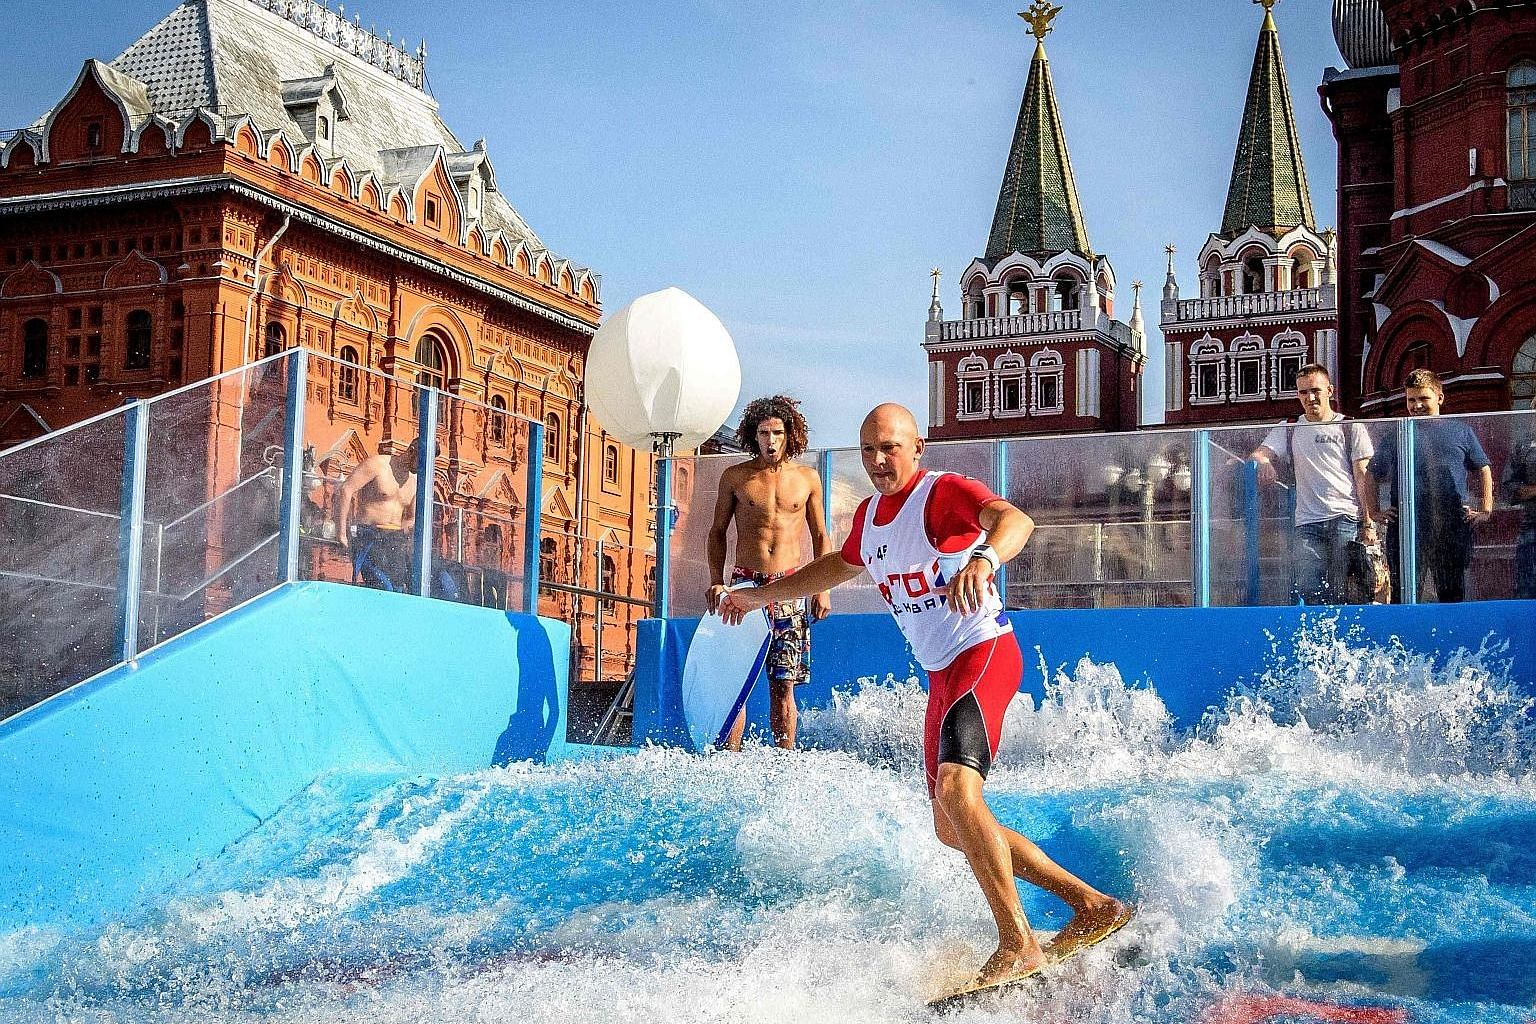 A man riding a flowboard on an artificial wave structure installed next to the Red Square and the Kremlin in Moscow on Tuesday. Various attractions were installed throughout the city to mark the 870th anniversary of Moscow.